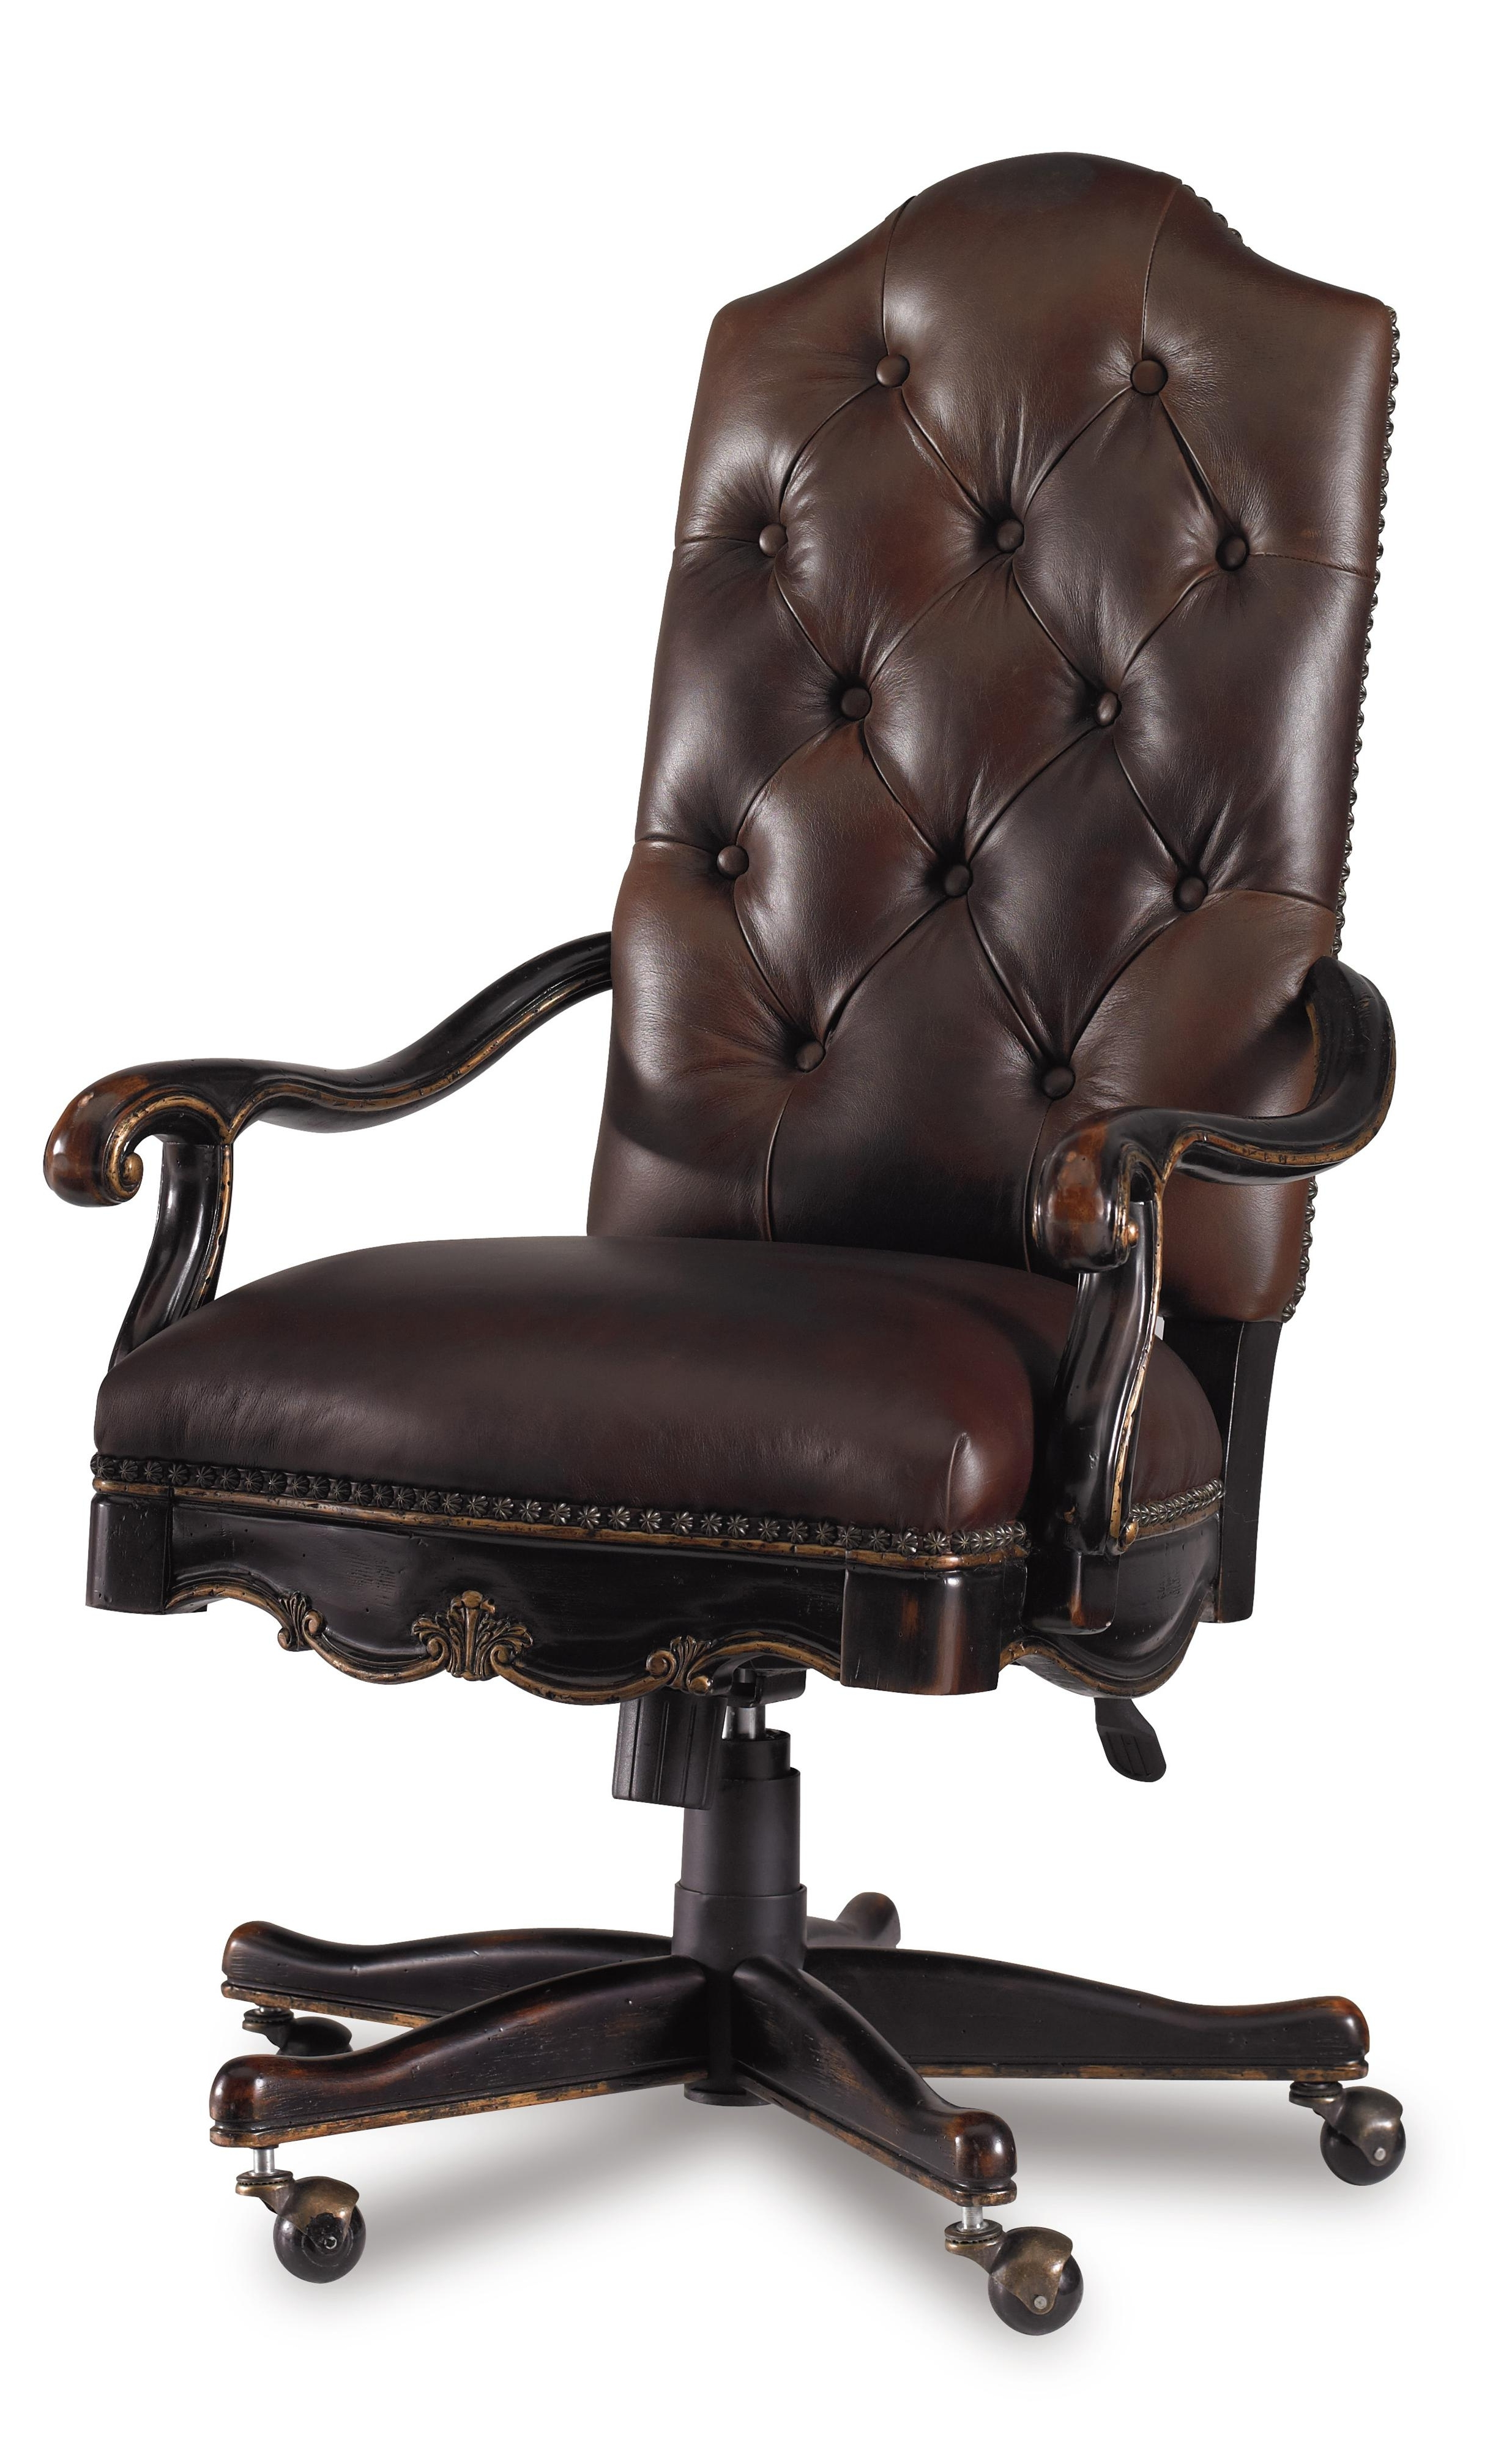 Well Liked Chair : Martinez Executive Tilt Leather Office Chair Big And Tall Within Big And Tall Executive Office Chairs (View 18 of 20)